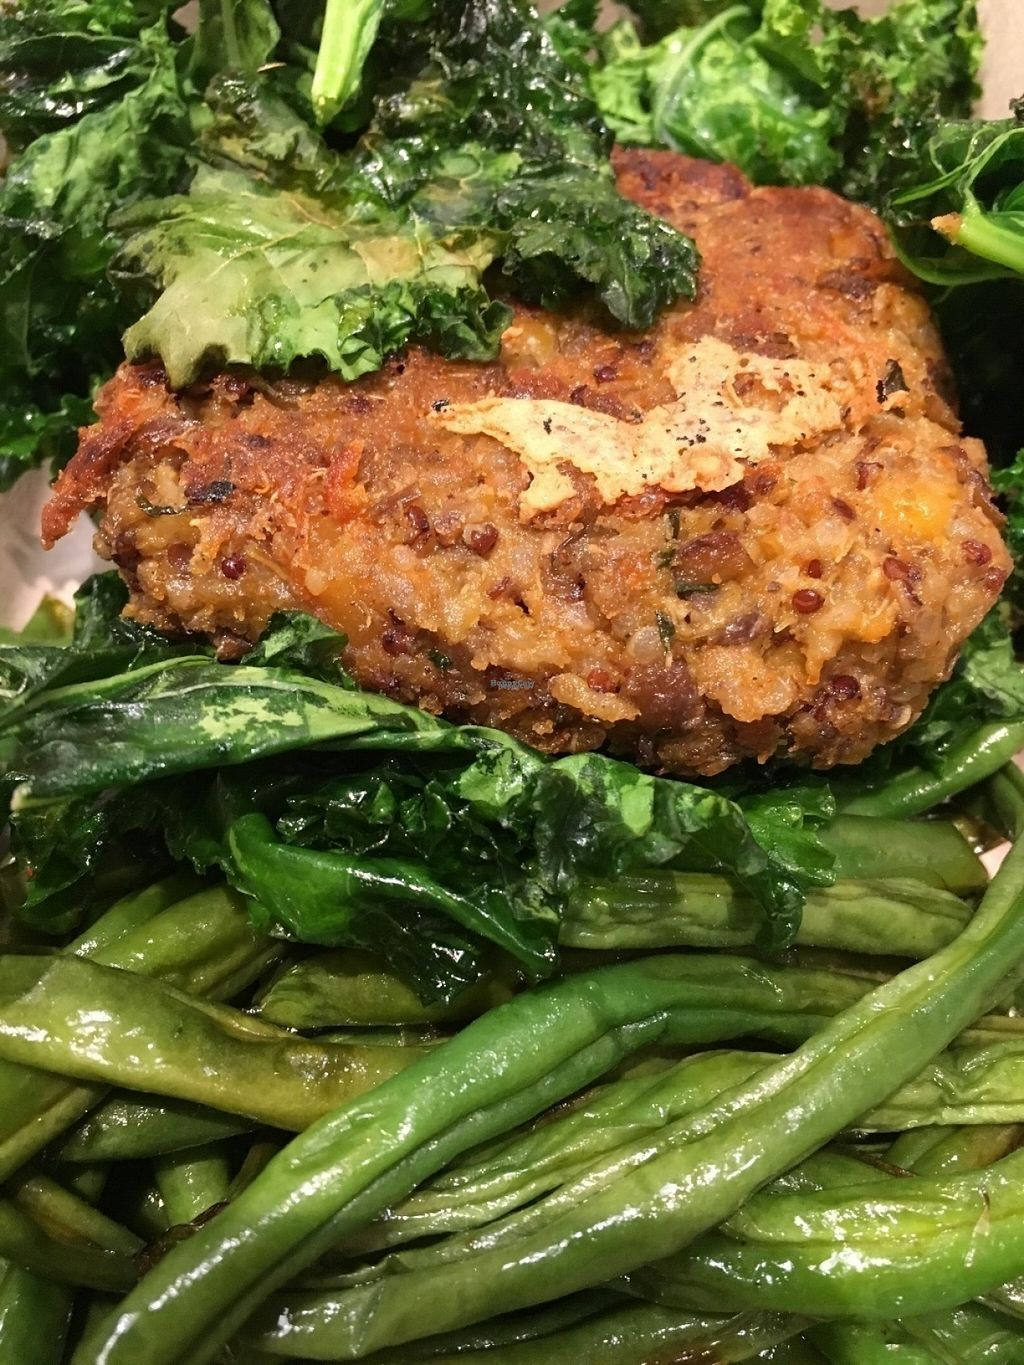 """Photo of The Little Beet  by <a href=""""/members/profile/cookiem"""">cookiem</a> <br/>Vegan patty with charred green beans and kale <br/> August 15, 2016  - <a href='/contact/abuse/image/69179/169134'>Report</a>"""